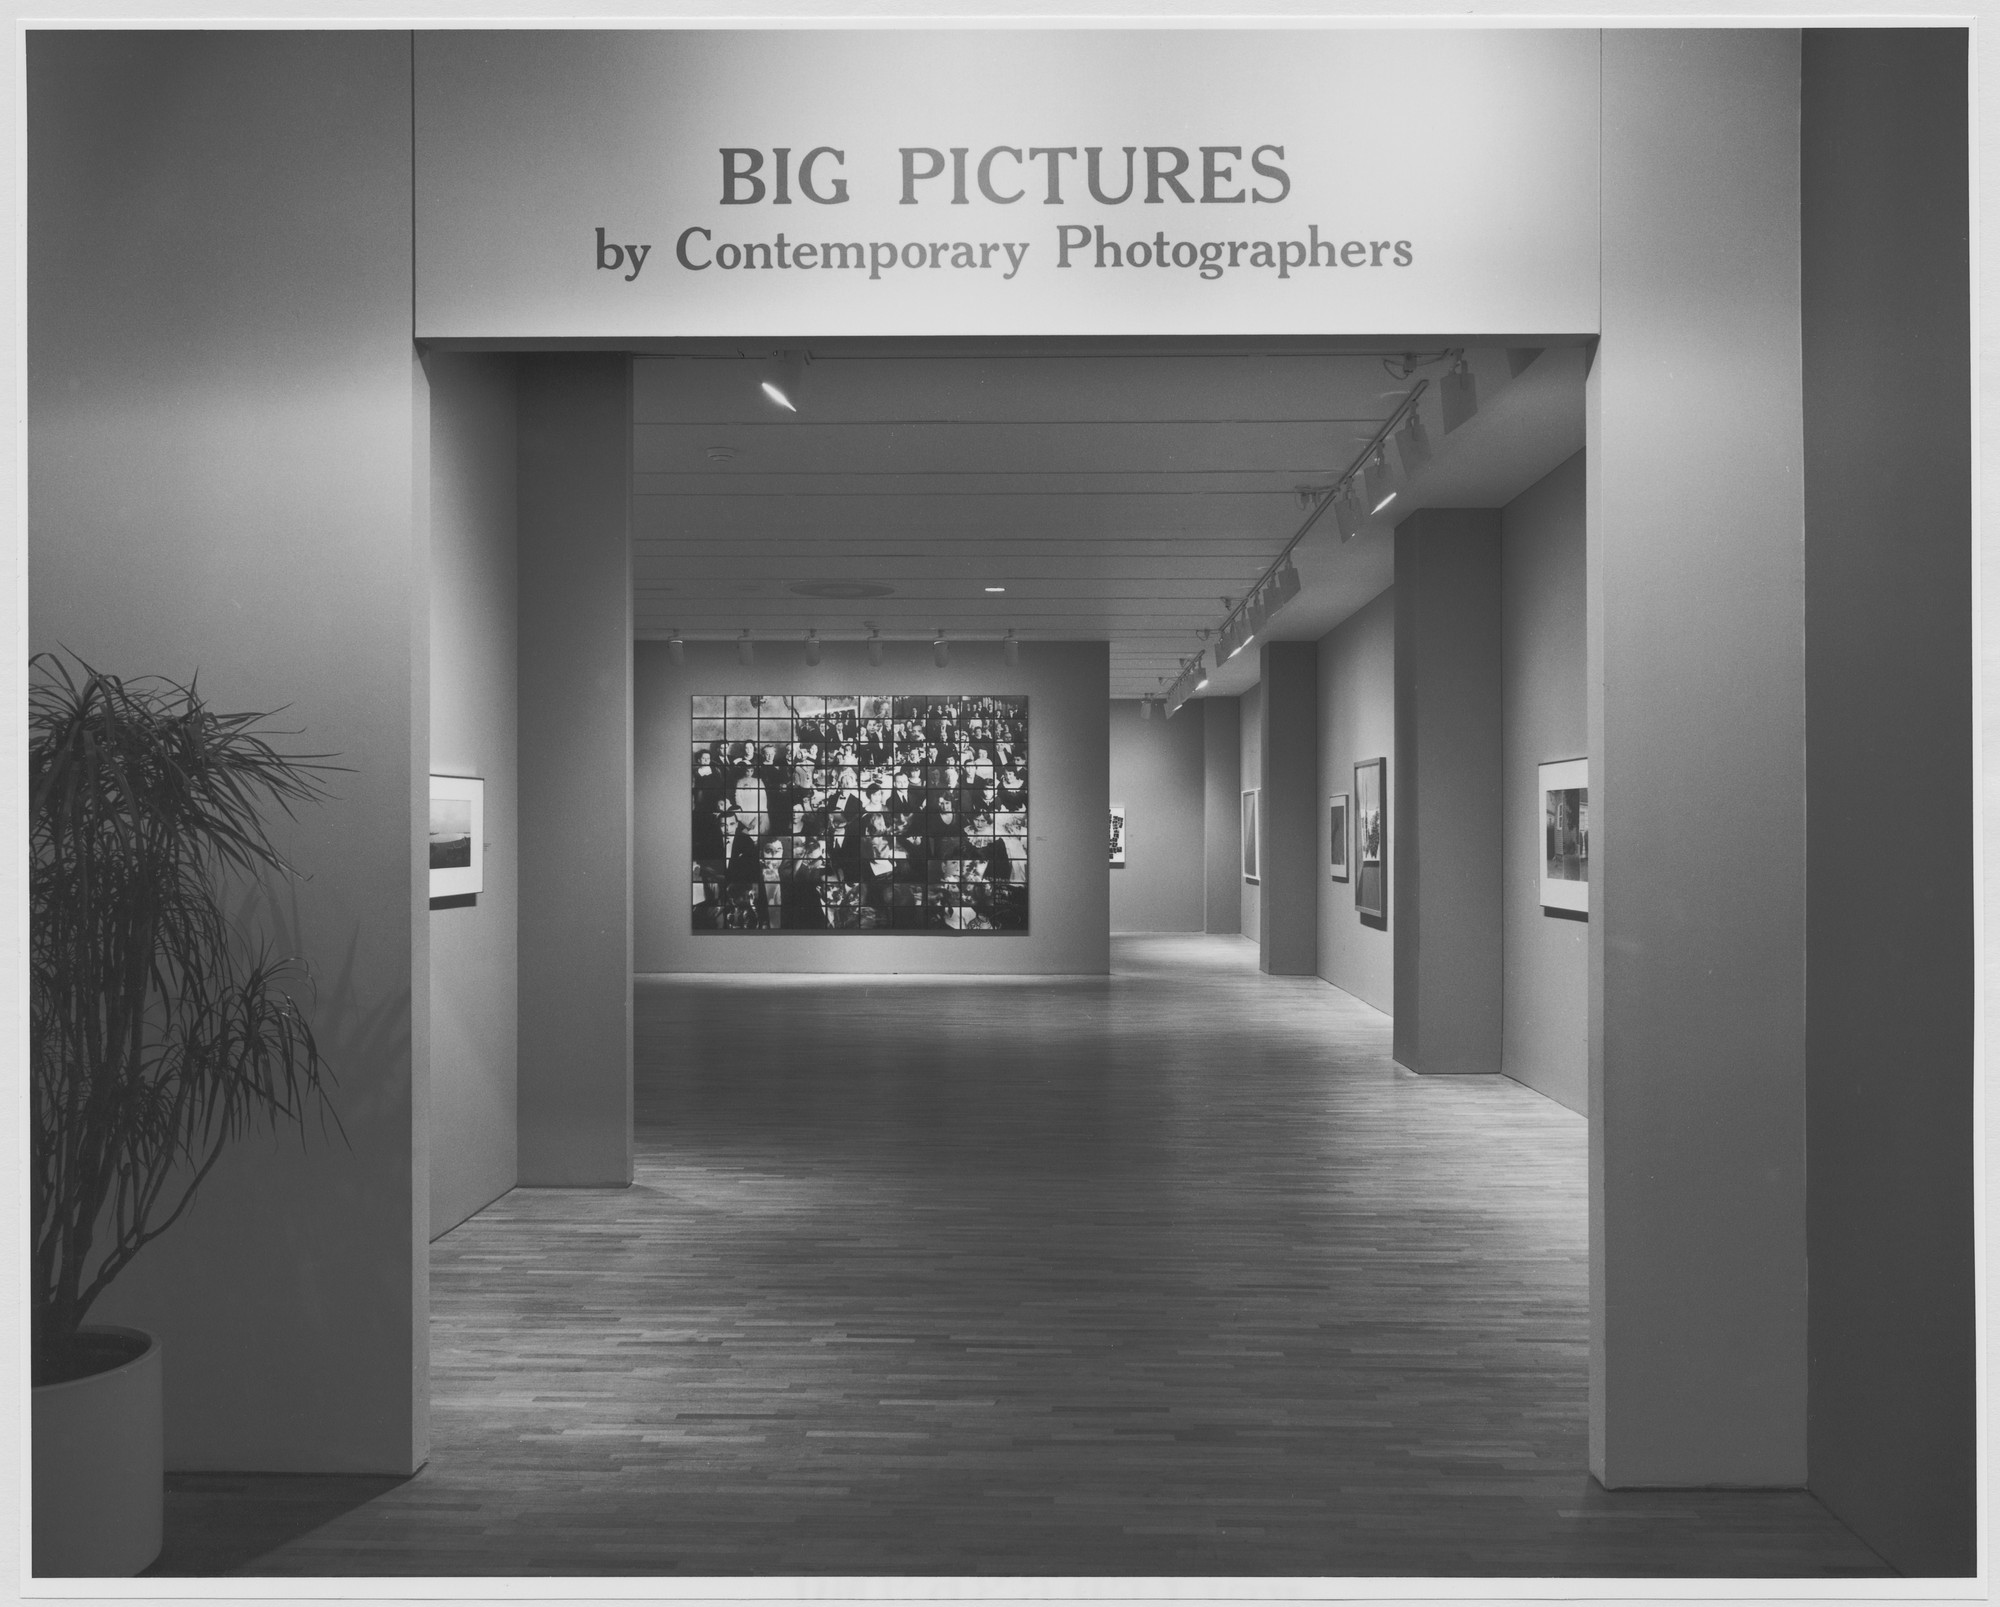 "Installation view of the exhibition, ""Big Pictures by Contemporary Photographers"" April 13, 1983–June 28, 1983. Photographic Archive. The Museum of Modern Art Archives, New York. IN1348.1. Photograph by Mali Olatunji."